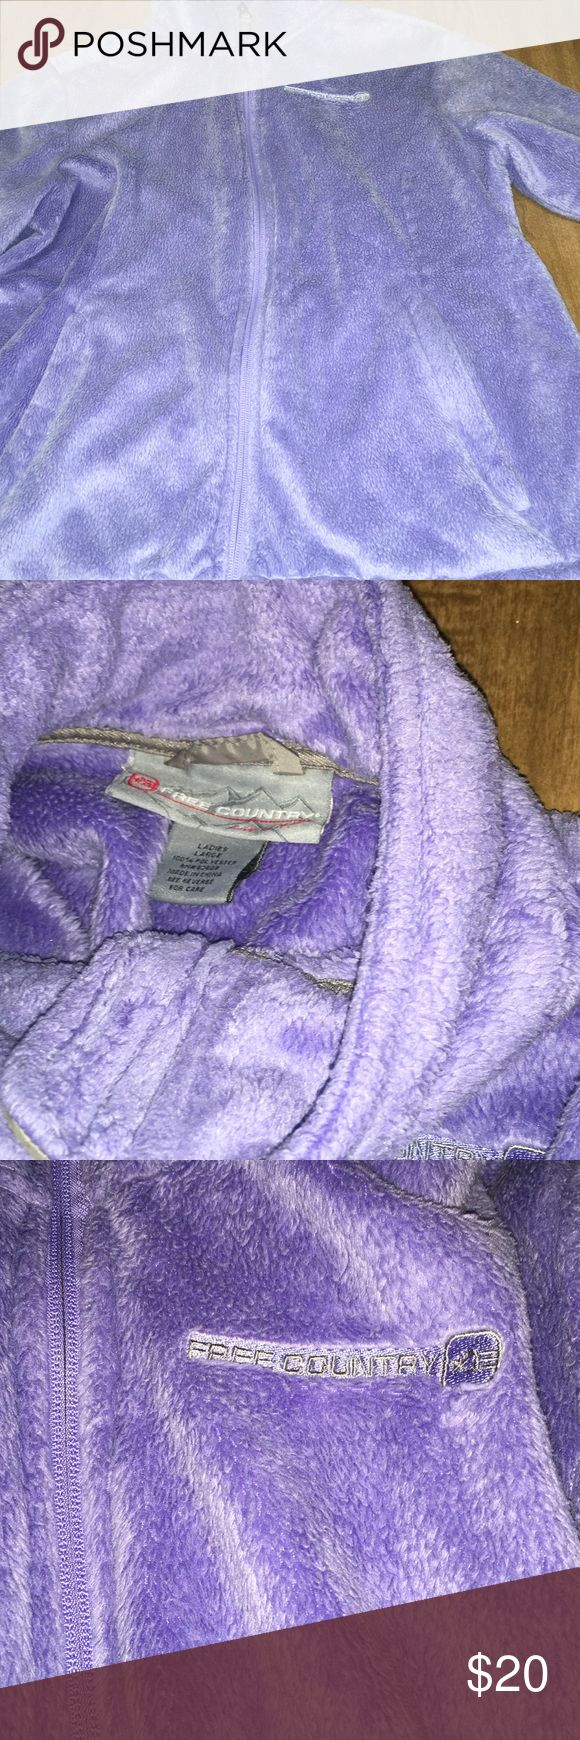 FREE COUNTRY JACKET It is a ladies large but honestly it is the same size as my north face jacket that is a SMALL. LIGHT PURPLE. Free Country Jackets & Coats